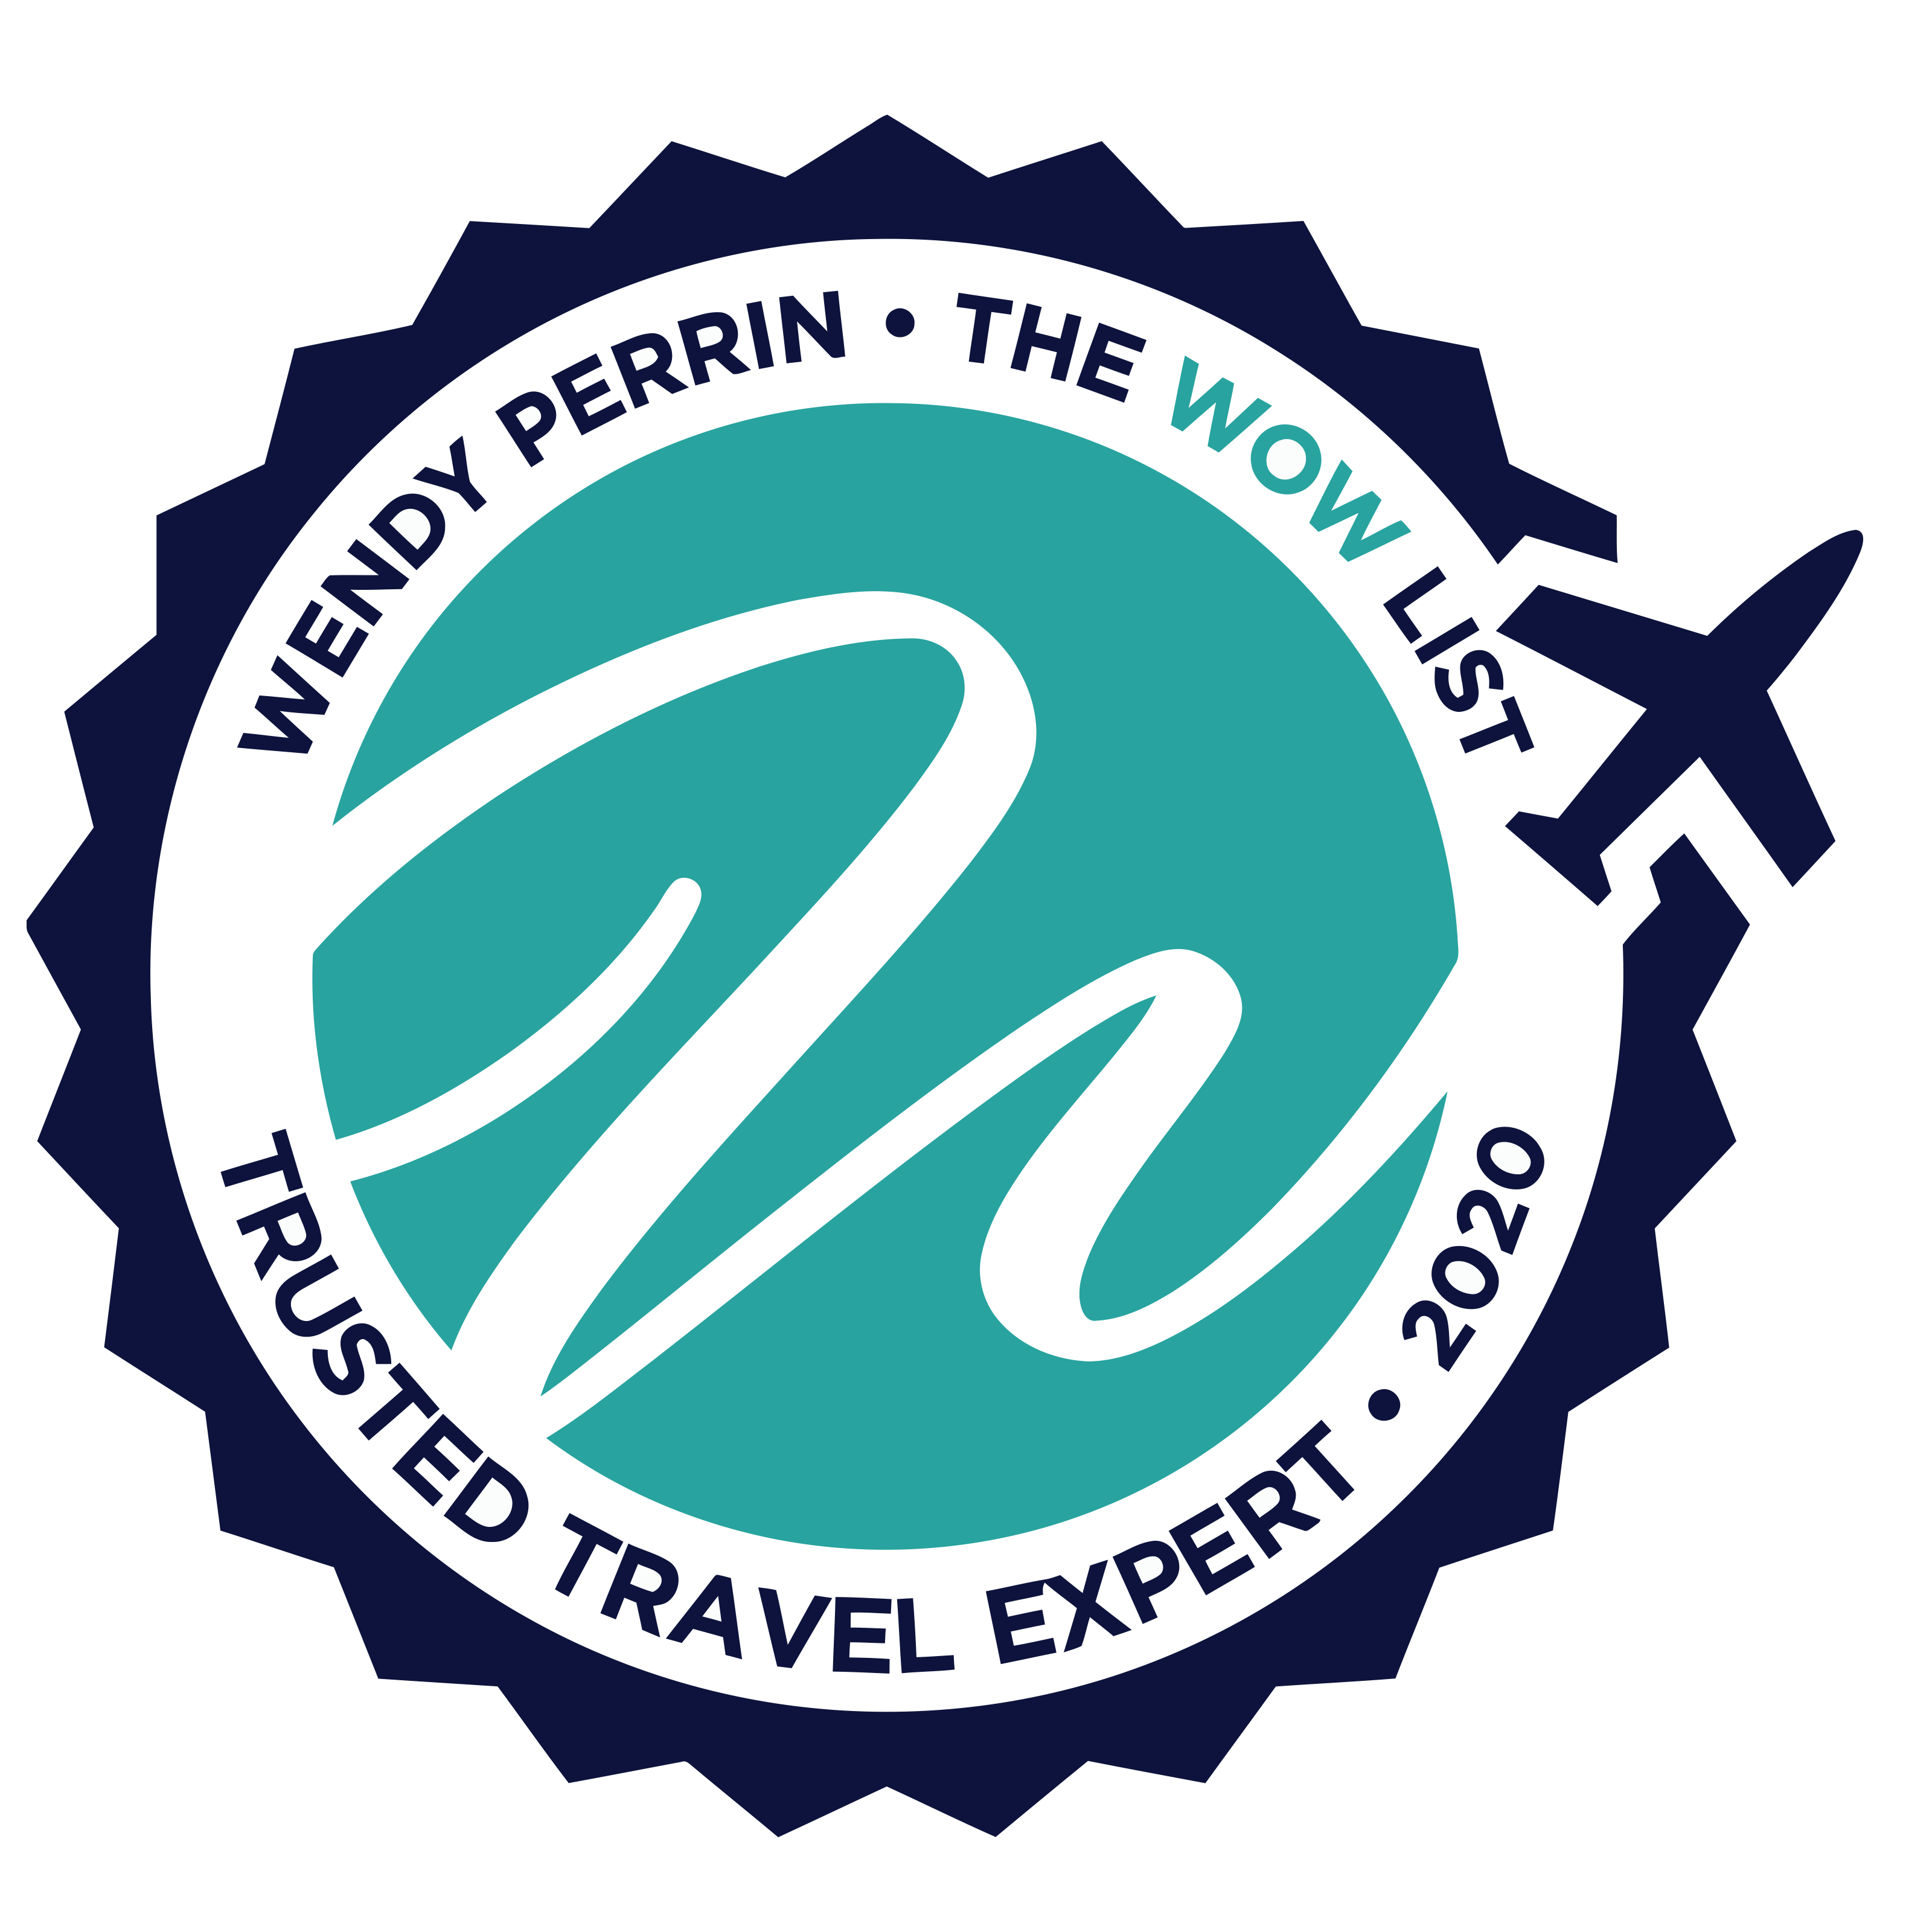 Wendy Perrin The WOW List logo 2020